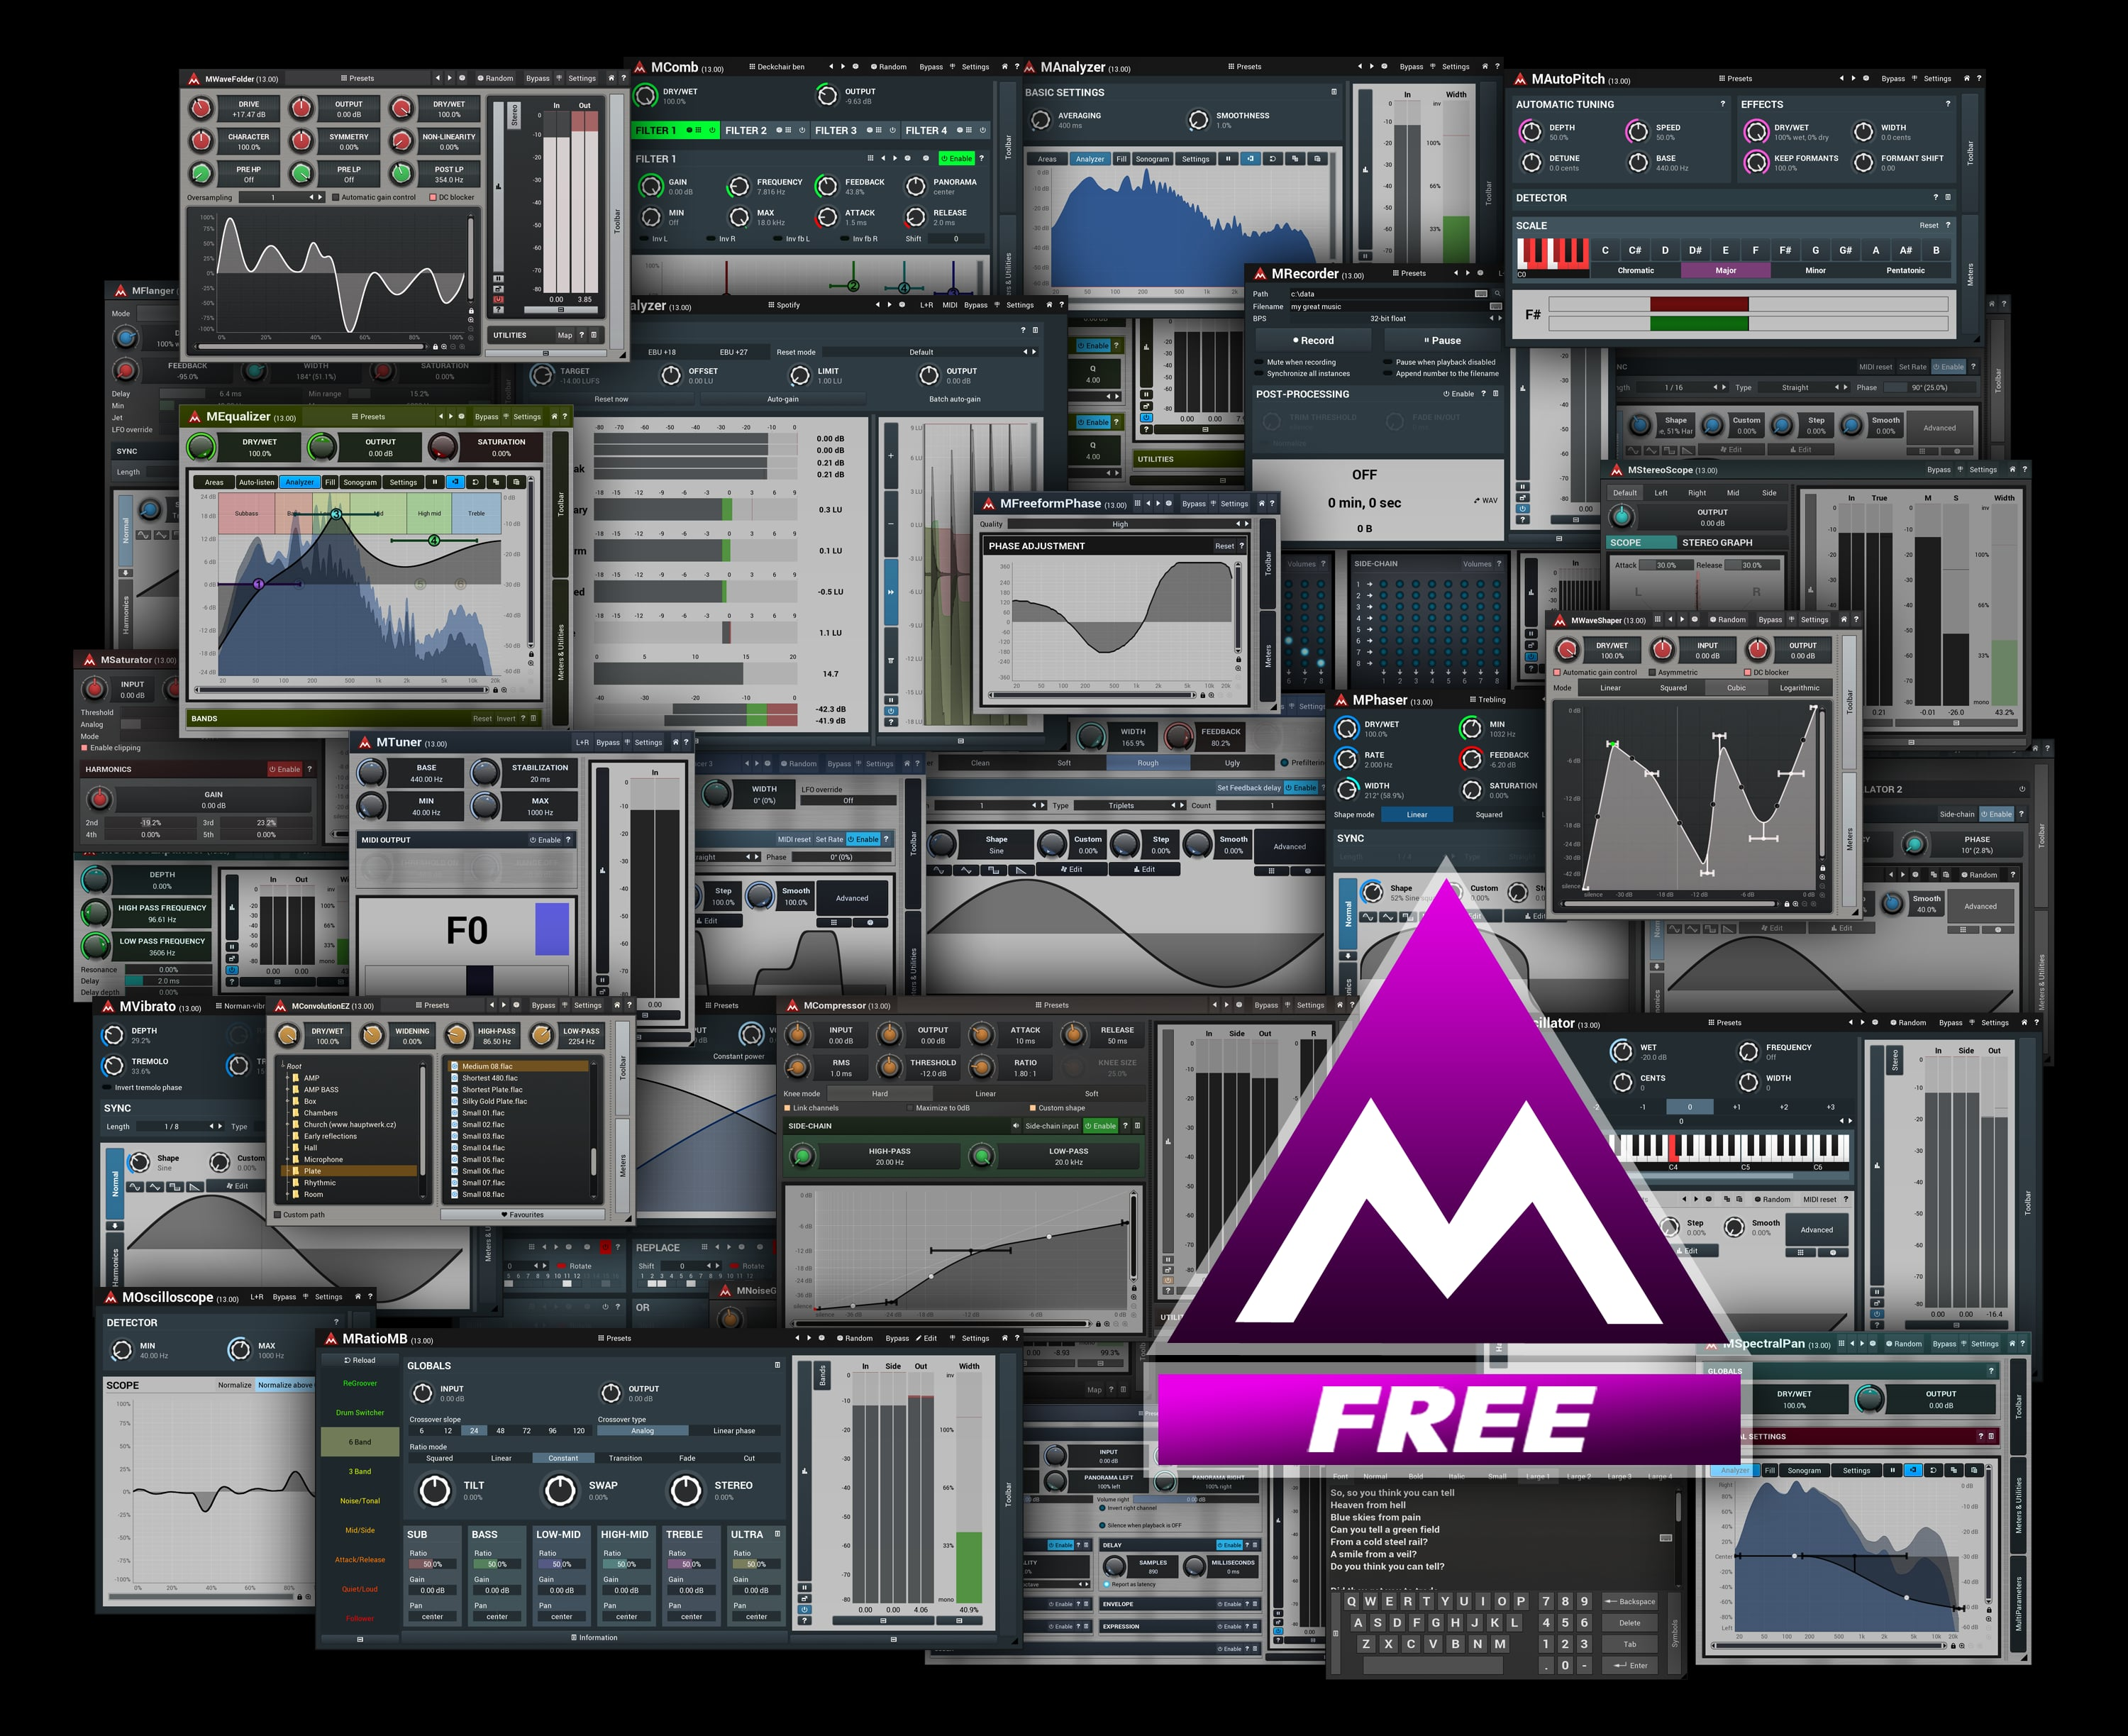 MFreeEffectsBundle00.jpg?v=1